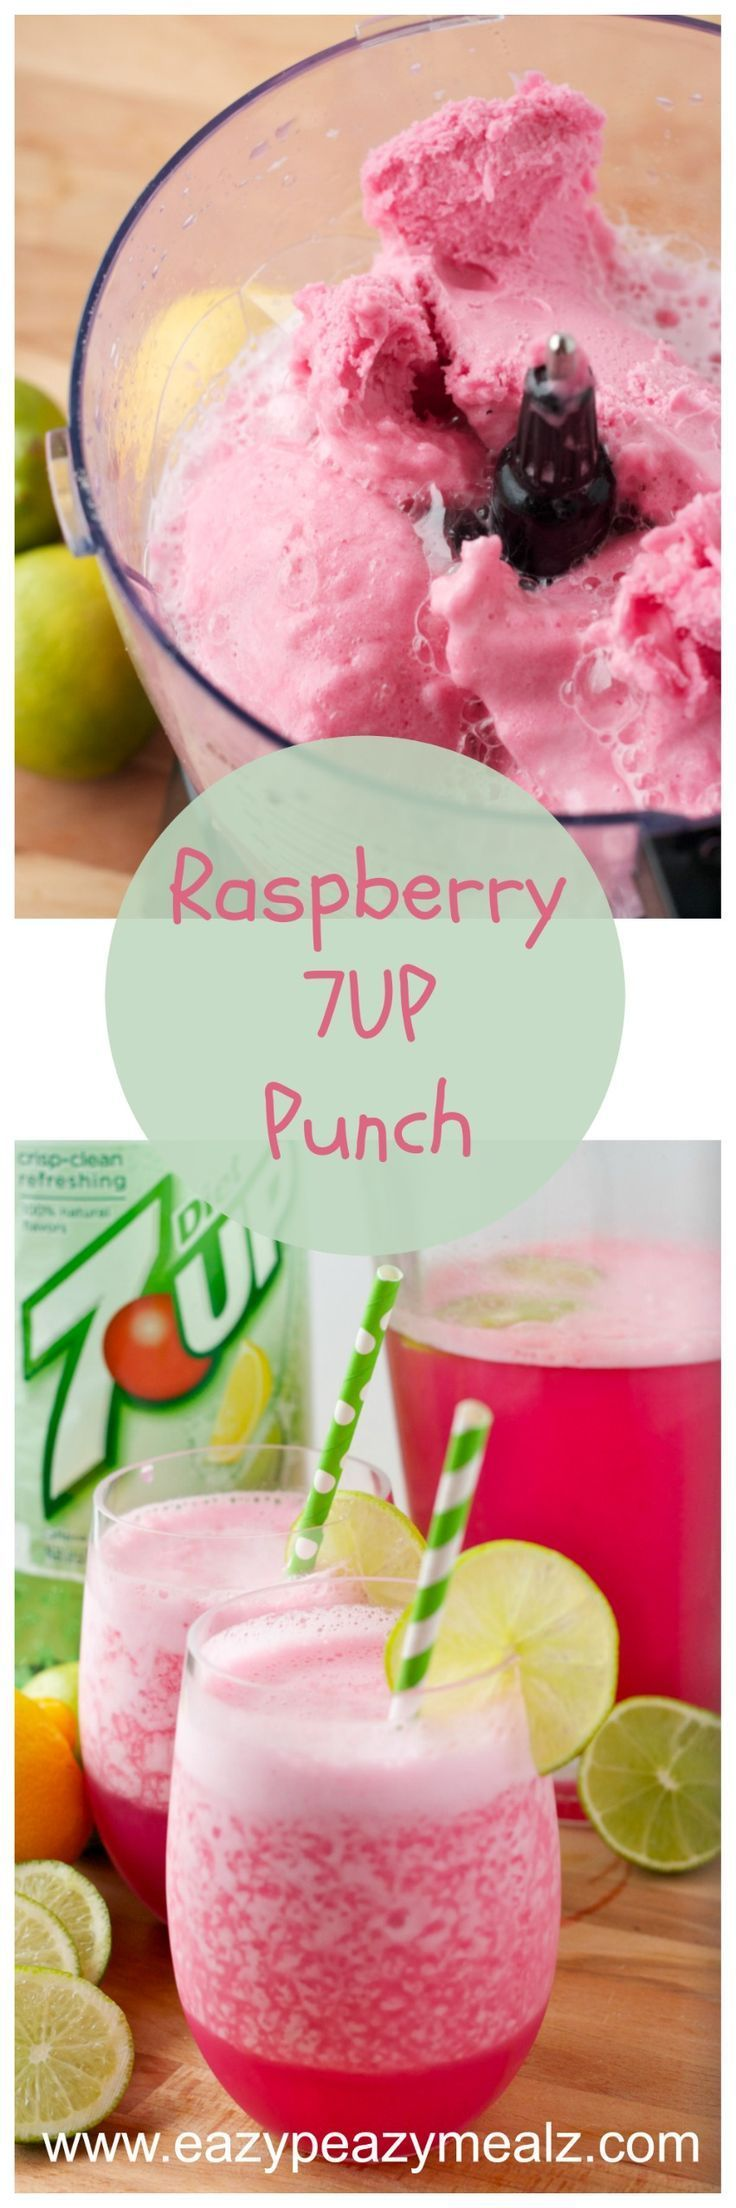 Best 297 YUMMY DRINK it up! images on Pinterest | Food and drink